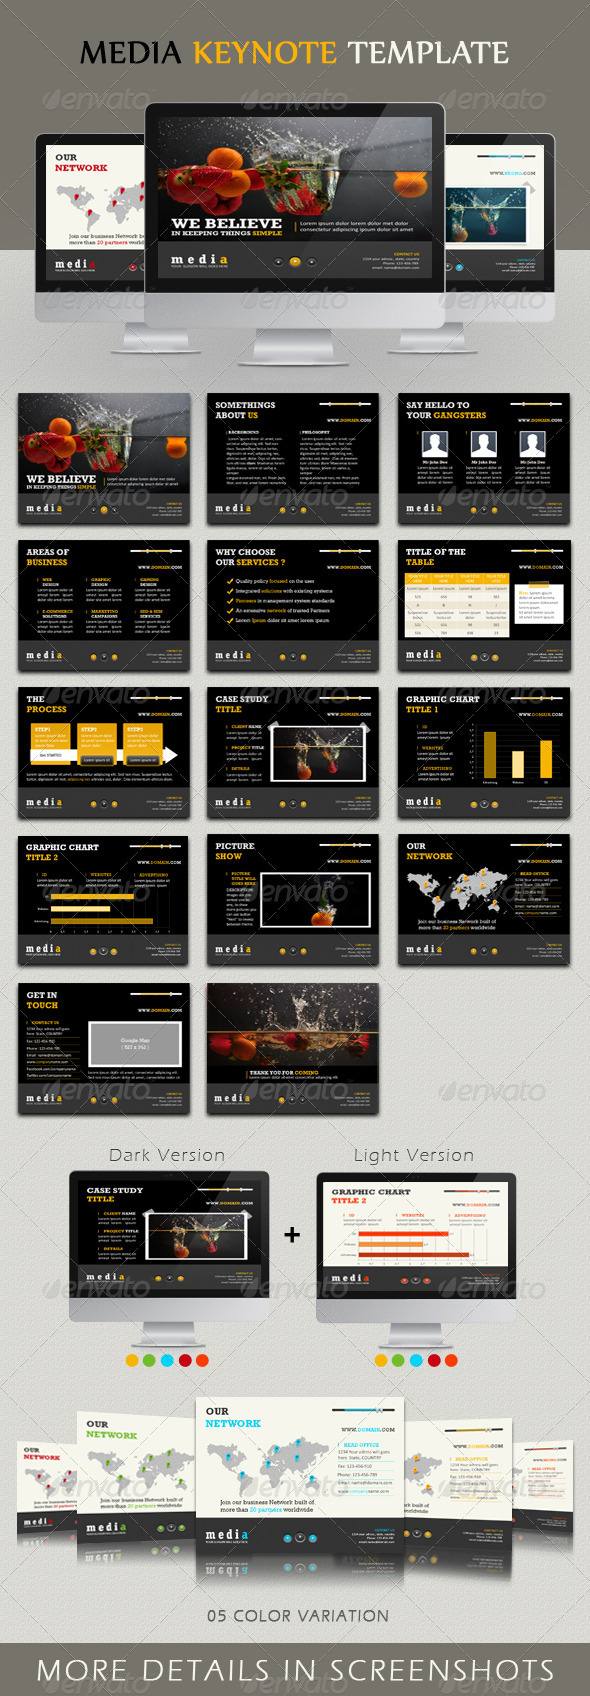 Media Keynote Template - Keynote Templates Presentation Templates